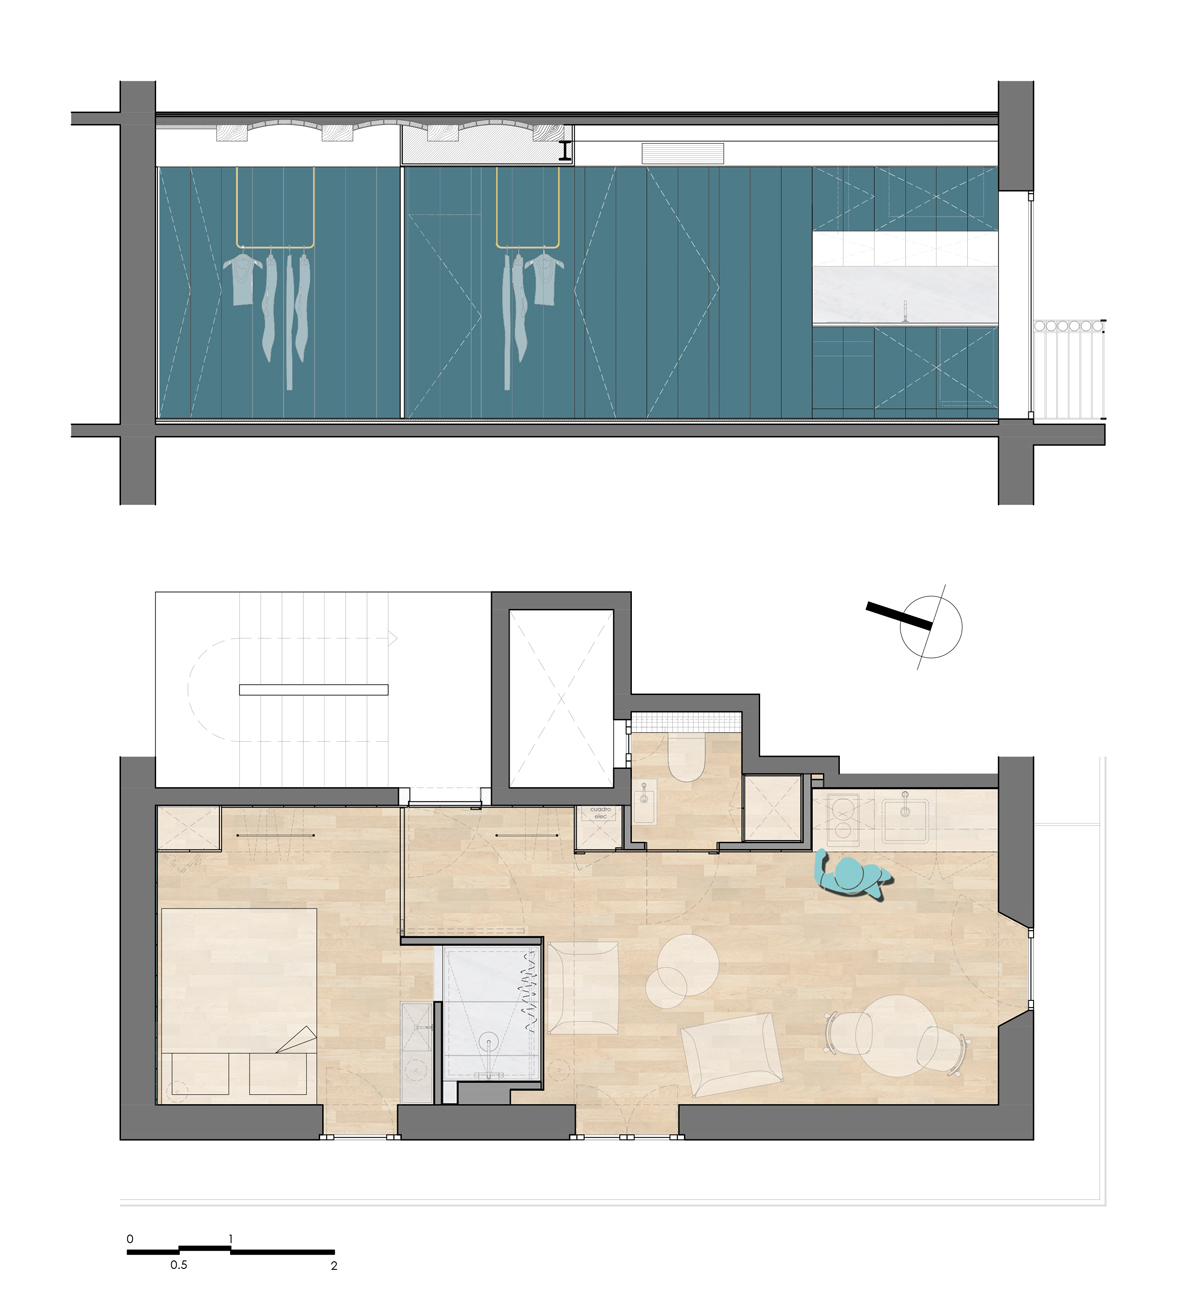 Project Floor Plan & Section